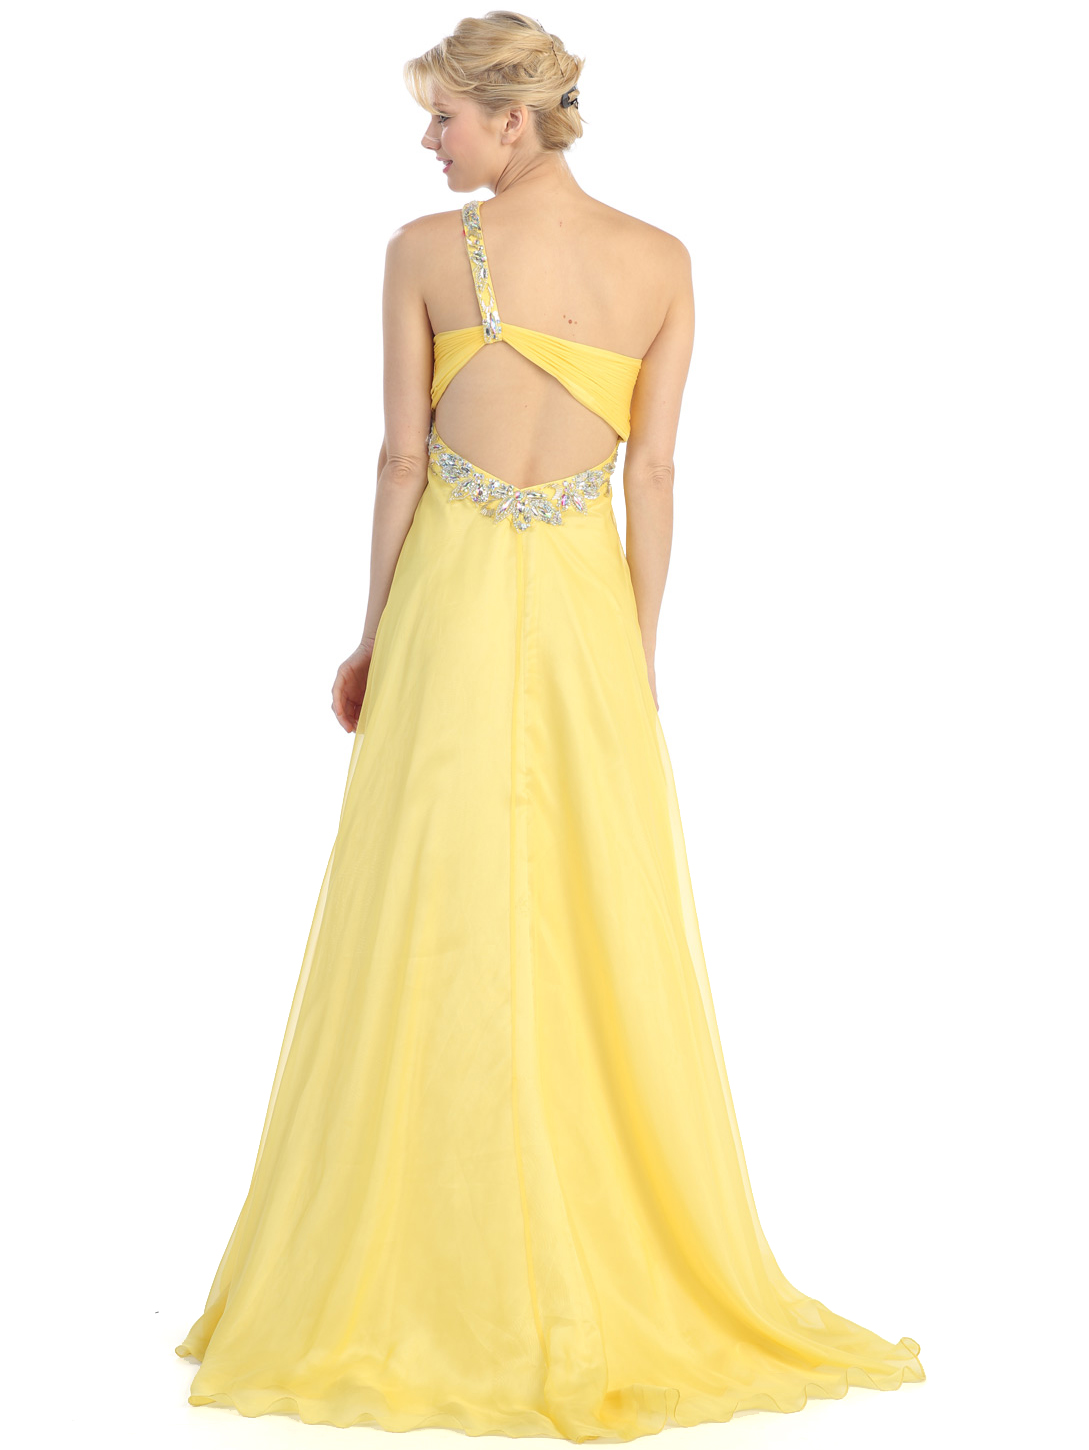 One Shoulder Cut Out Prom Dress | Sung Boutique L.A.